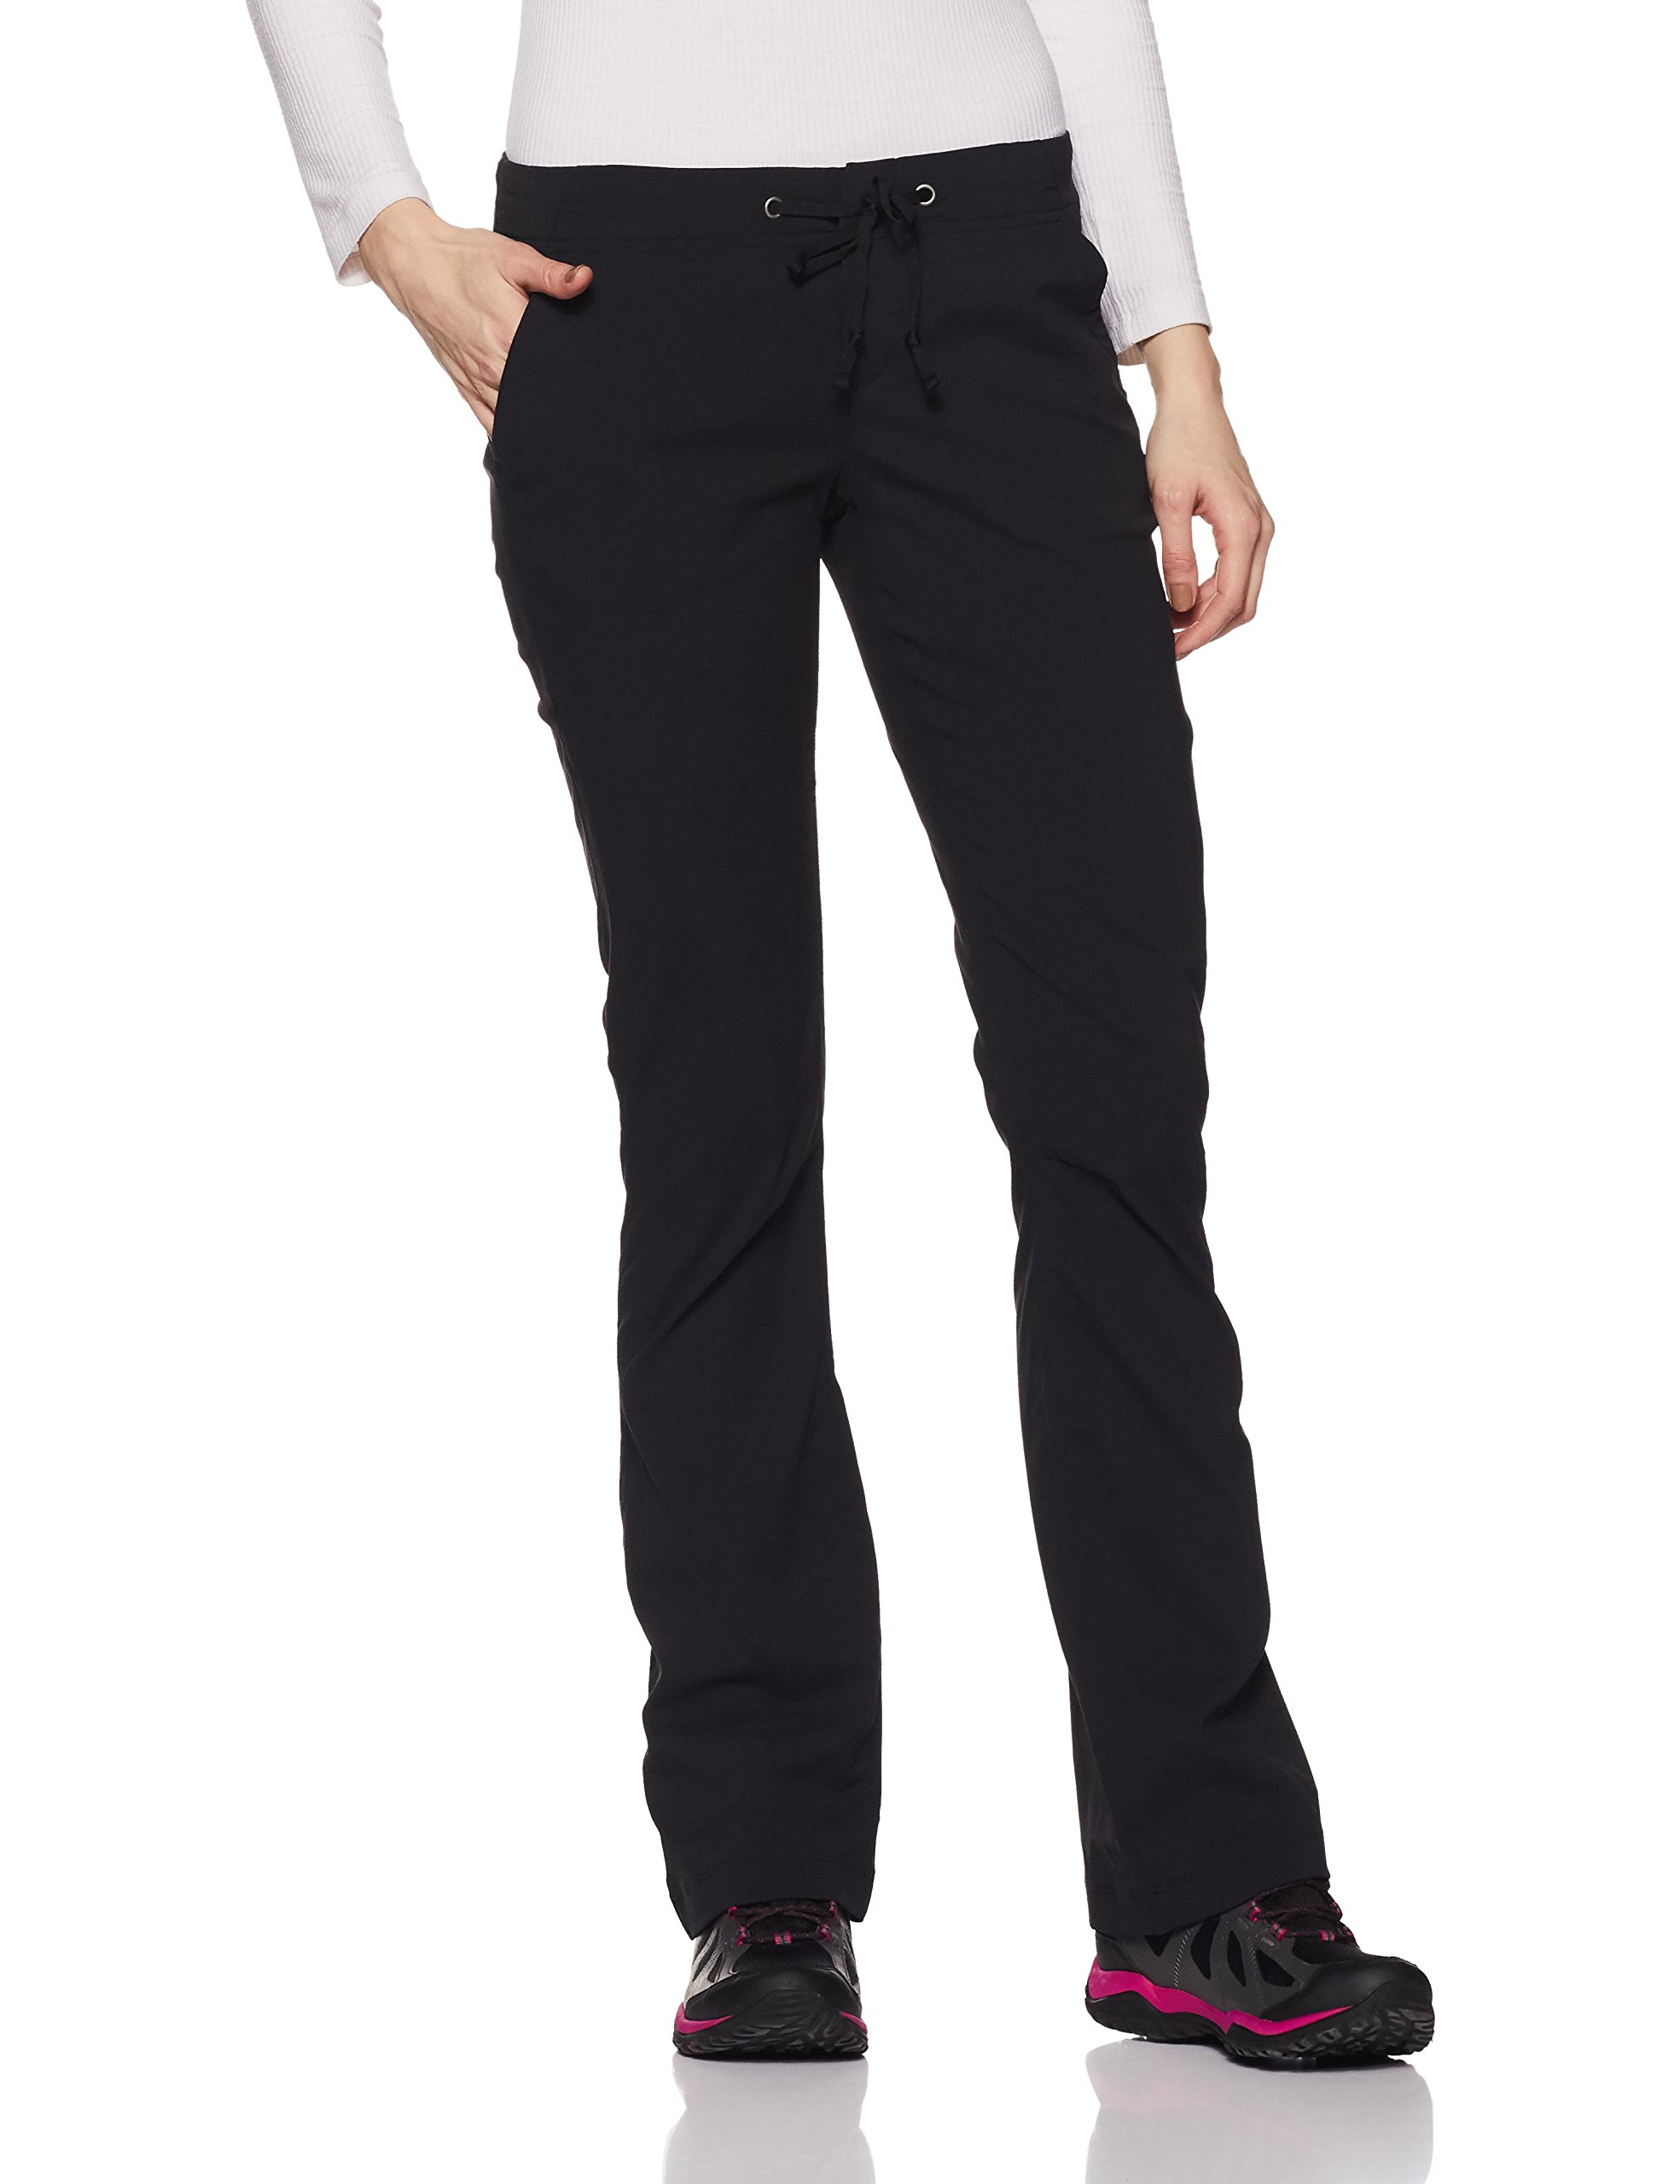 Columbia Women's Anytime Outdoor Boot Cut Pant, black, 8Regular